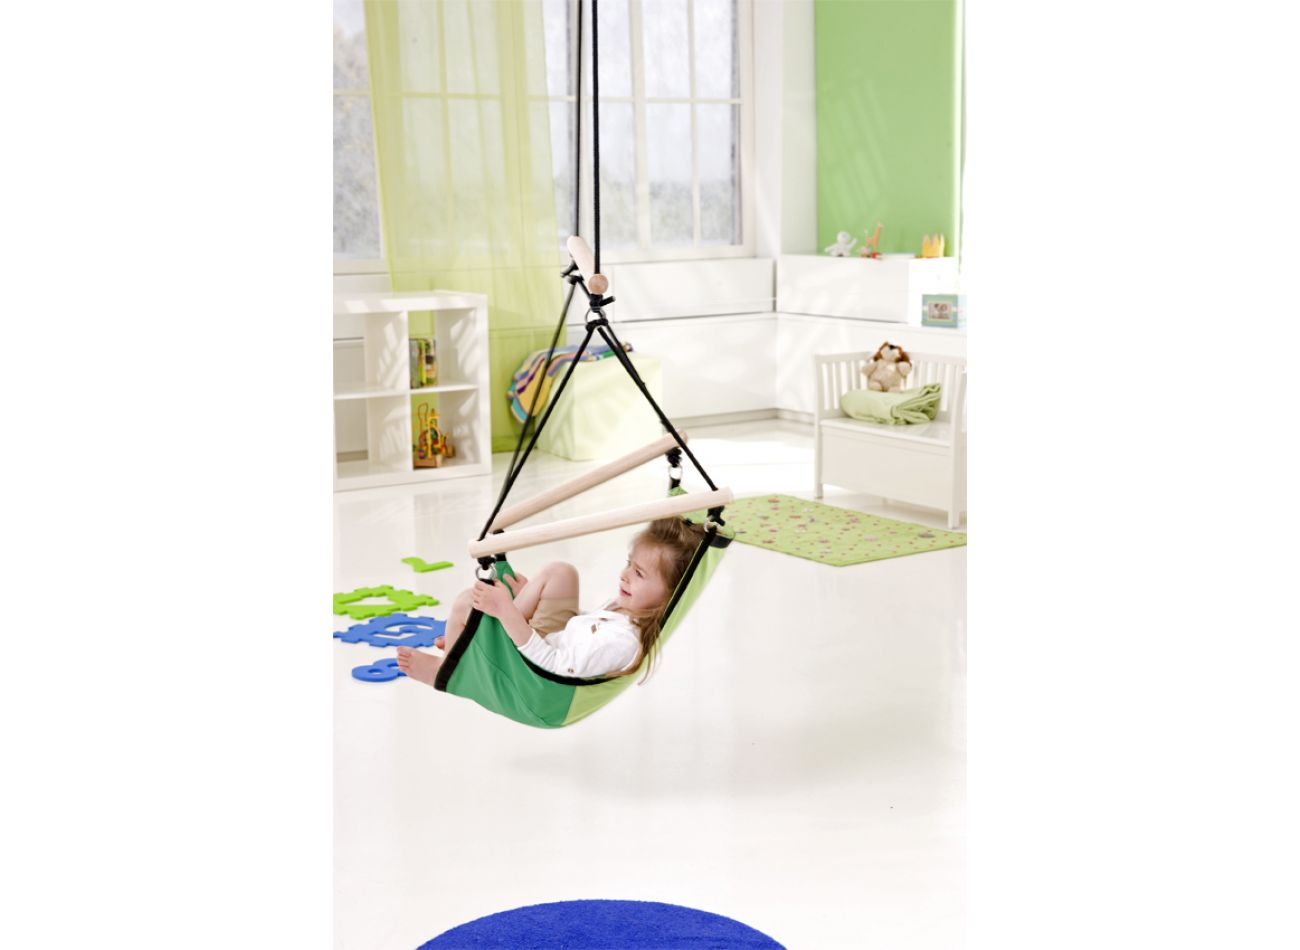 Hanging Chair Kids Swinger Green